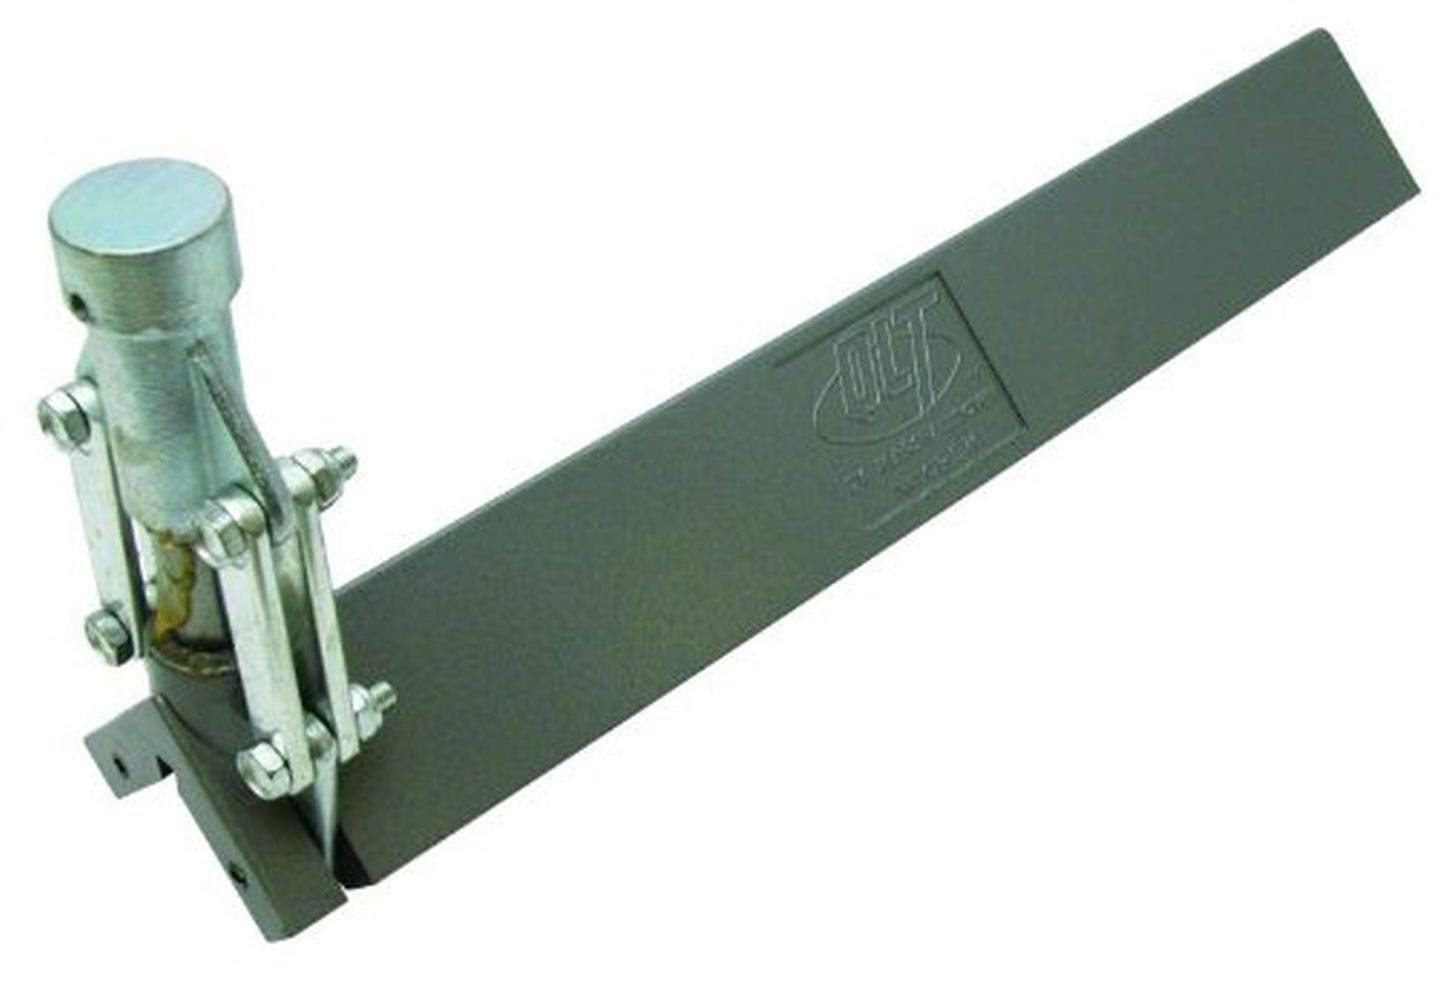 QLT By MARSHALLTOWN CB429 Cornerbead Tool with Mallet by Qlt By Marshalltown